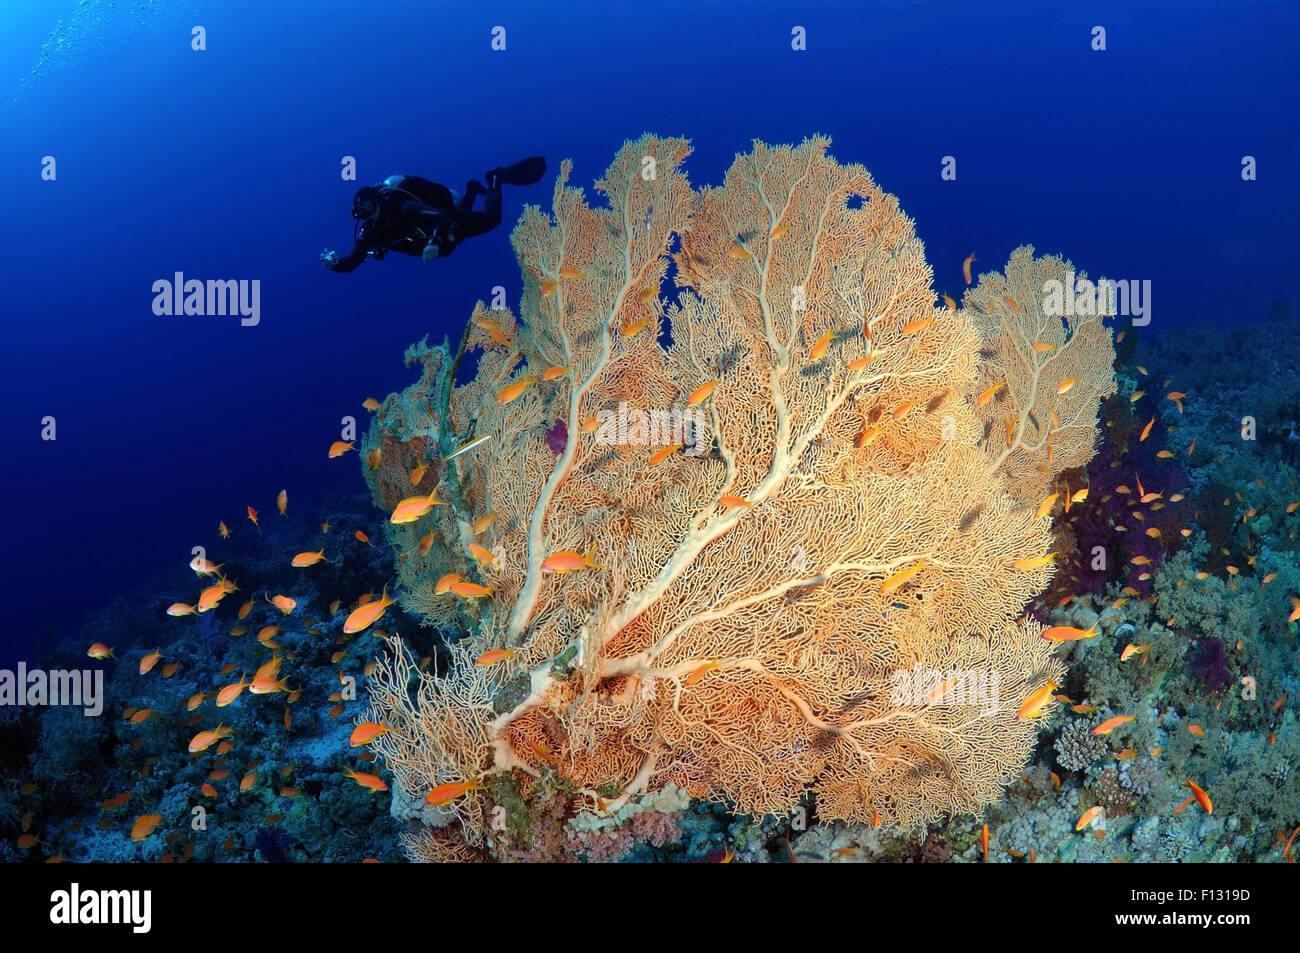 Red Sea, Egypt. 15th Oct, 2014. Diver looking at soft coral Venus fan or Venus sea fan, common sea fan, West Indian Stock Photo